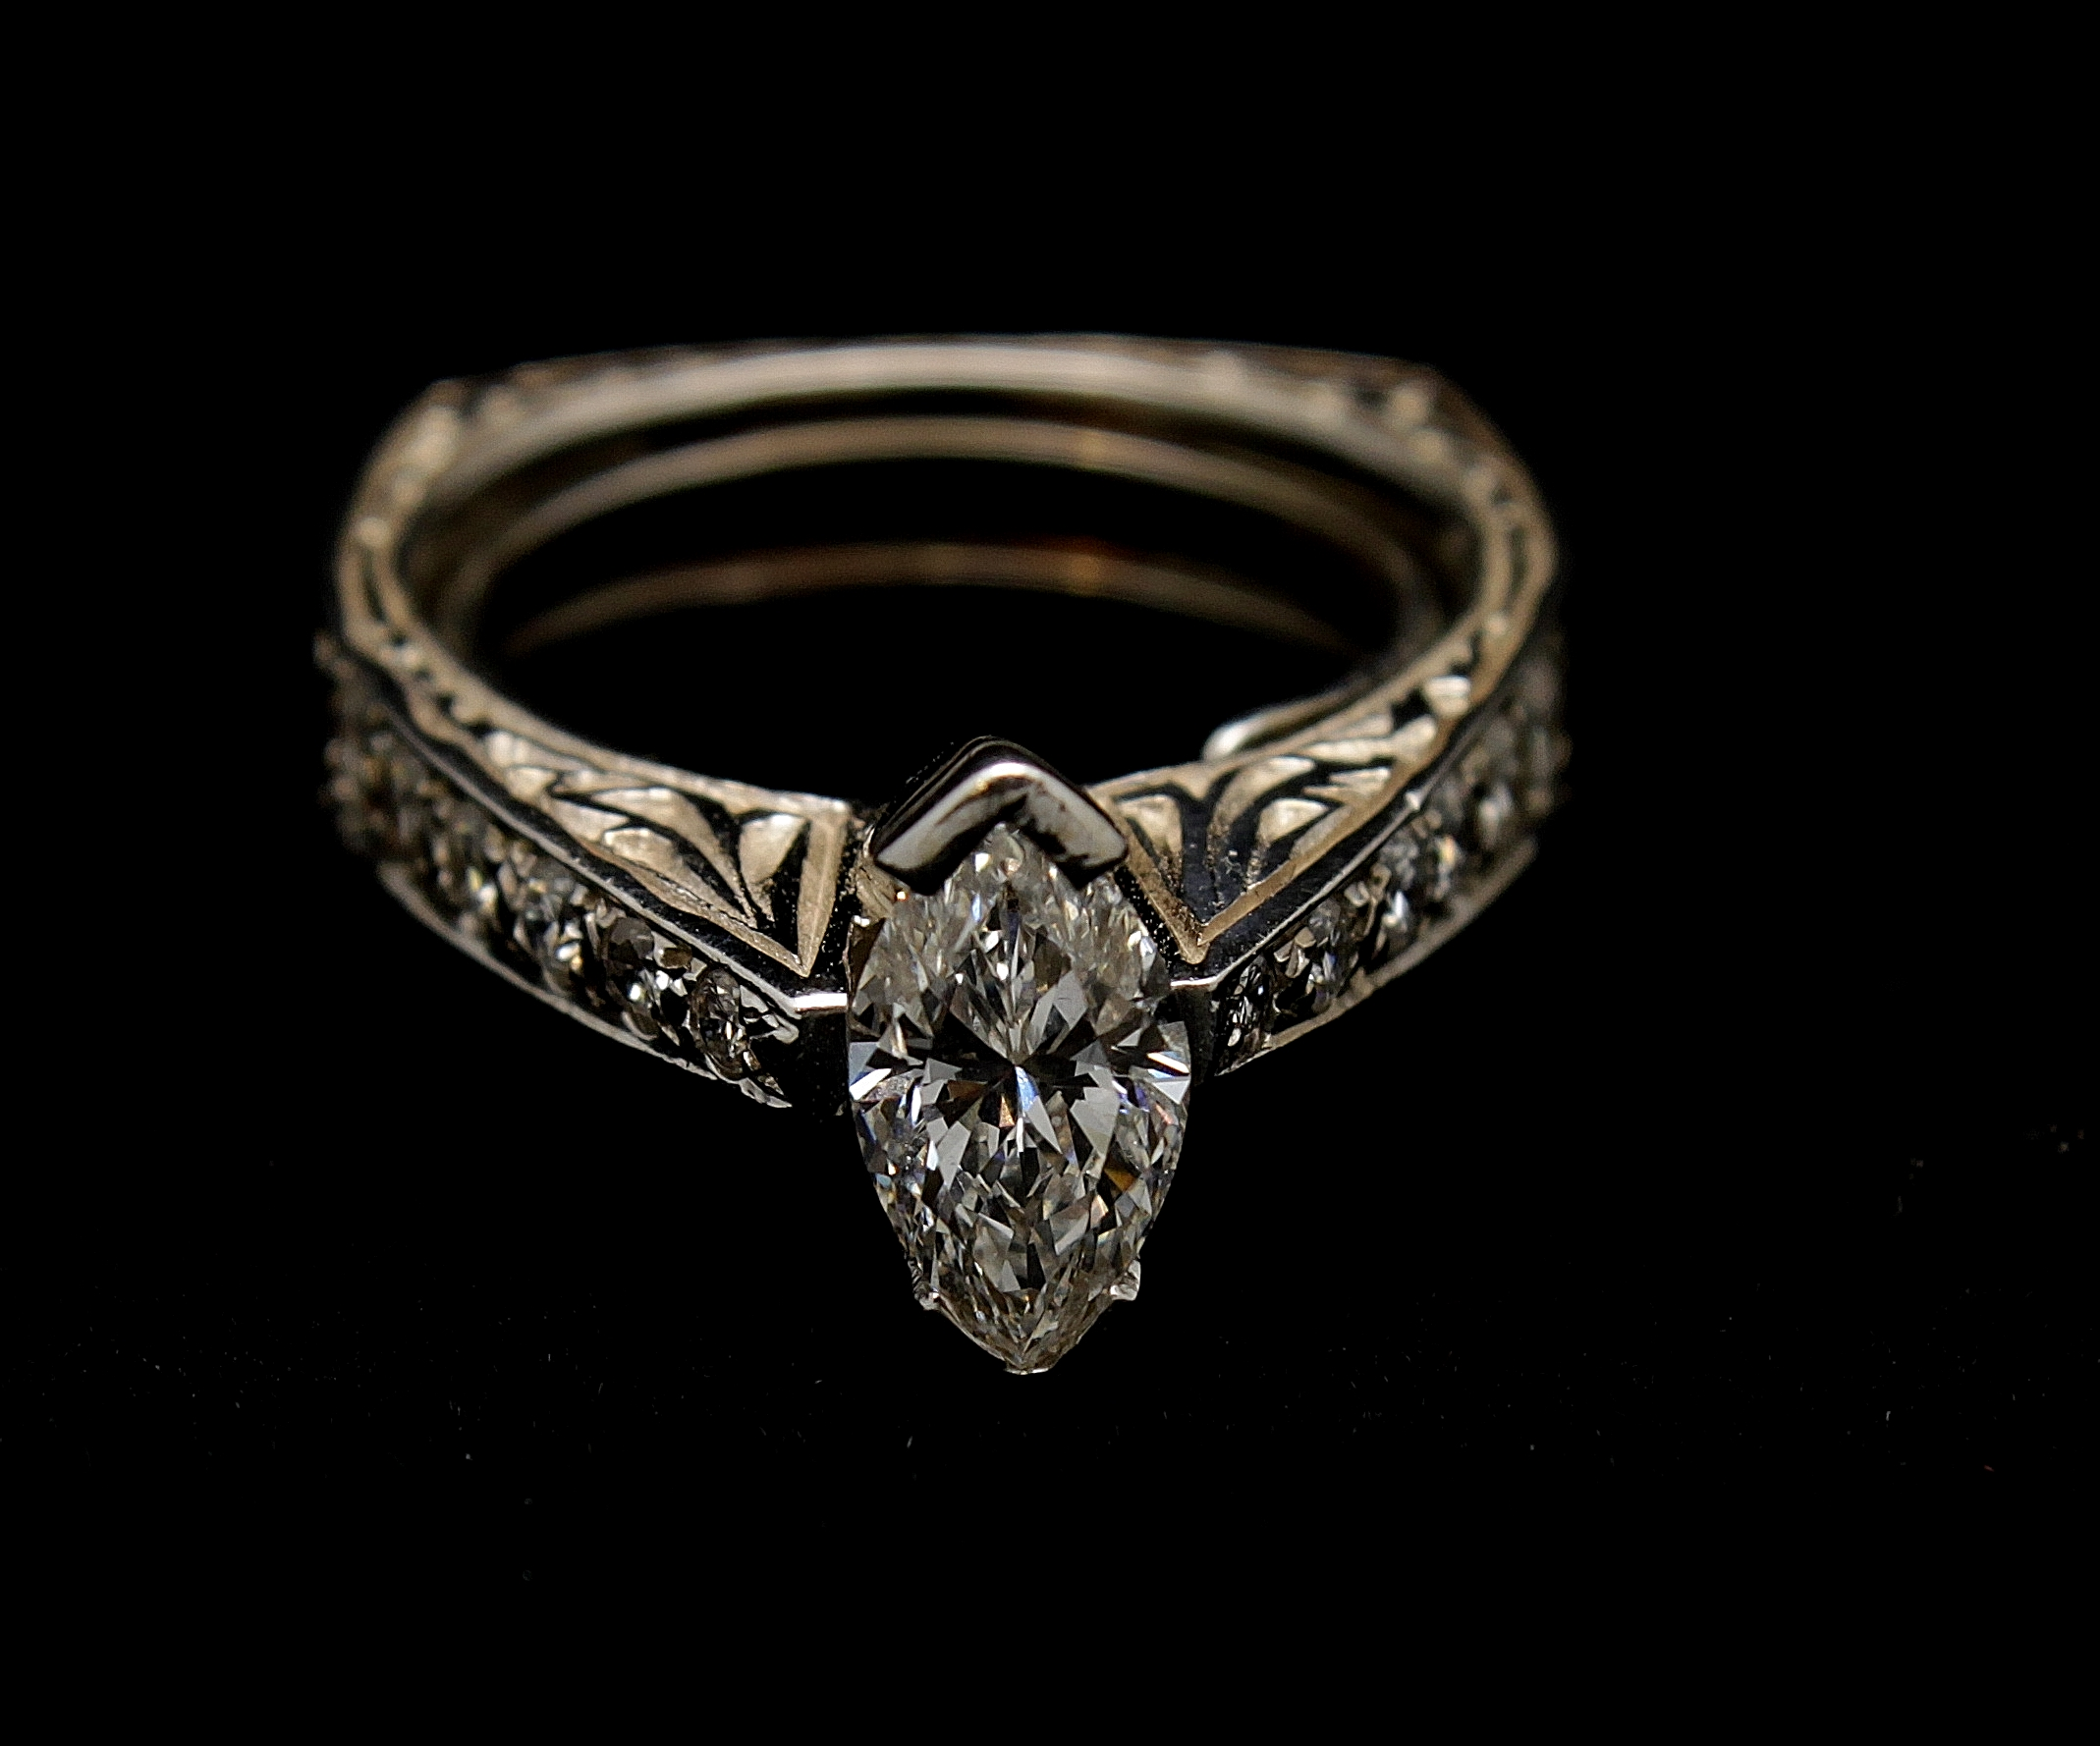 Vintage 14kt Diamond Ring 1.4cts